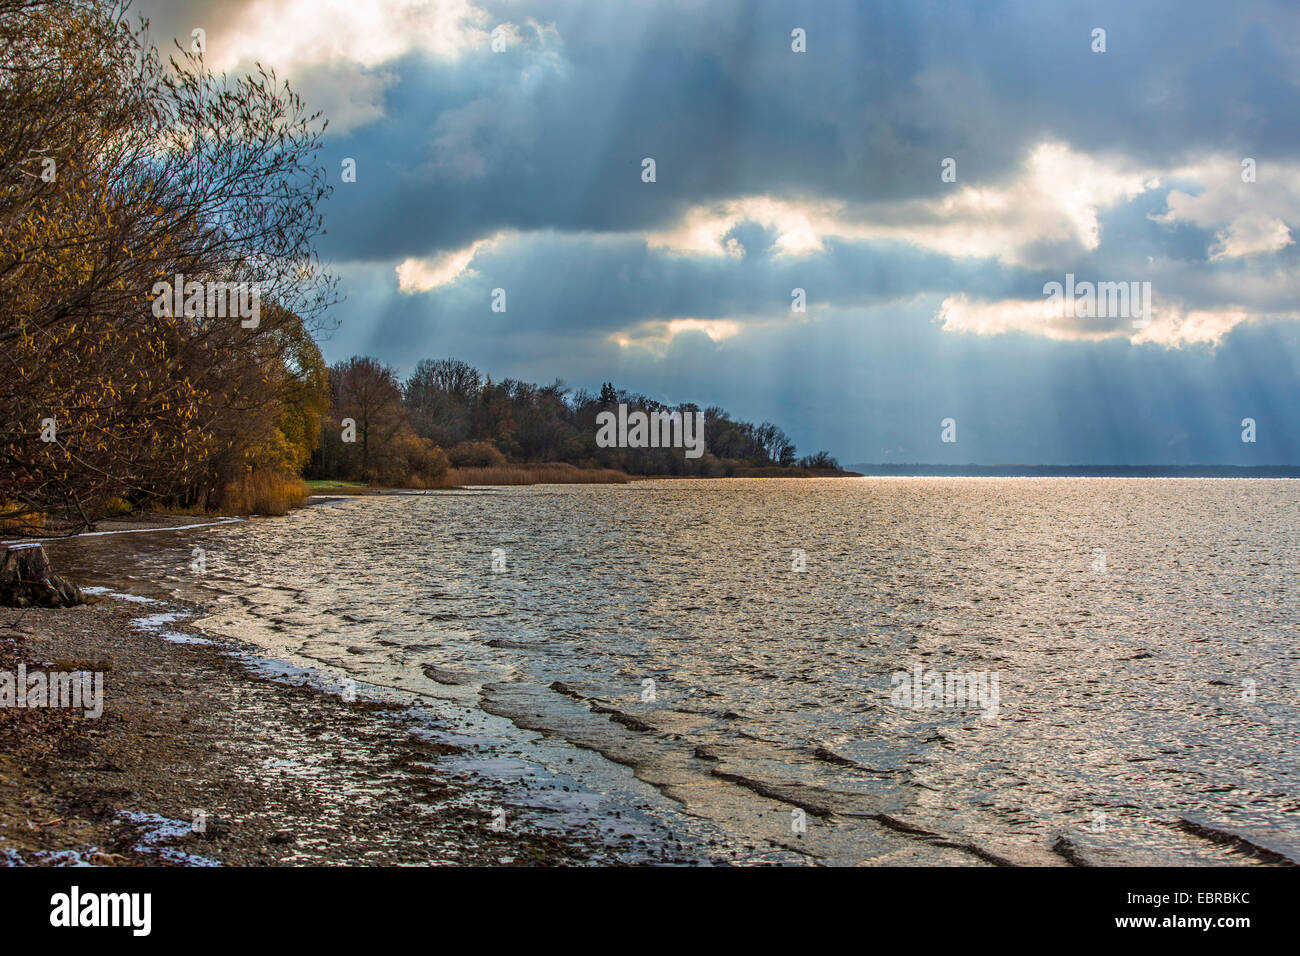 approaching thunderstorm over Chiemsee, Germany, Bavaria, Lake Chiemsee - Stock Image